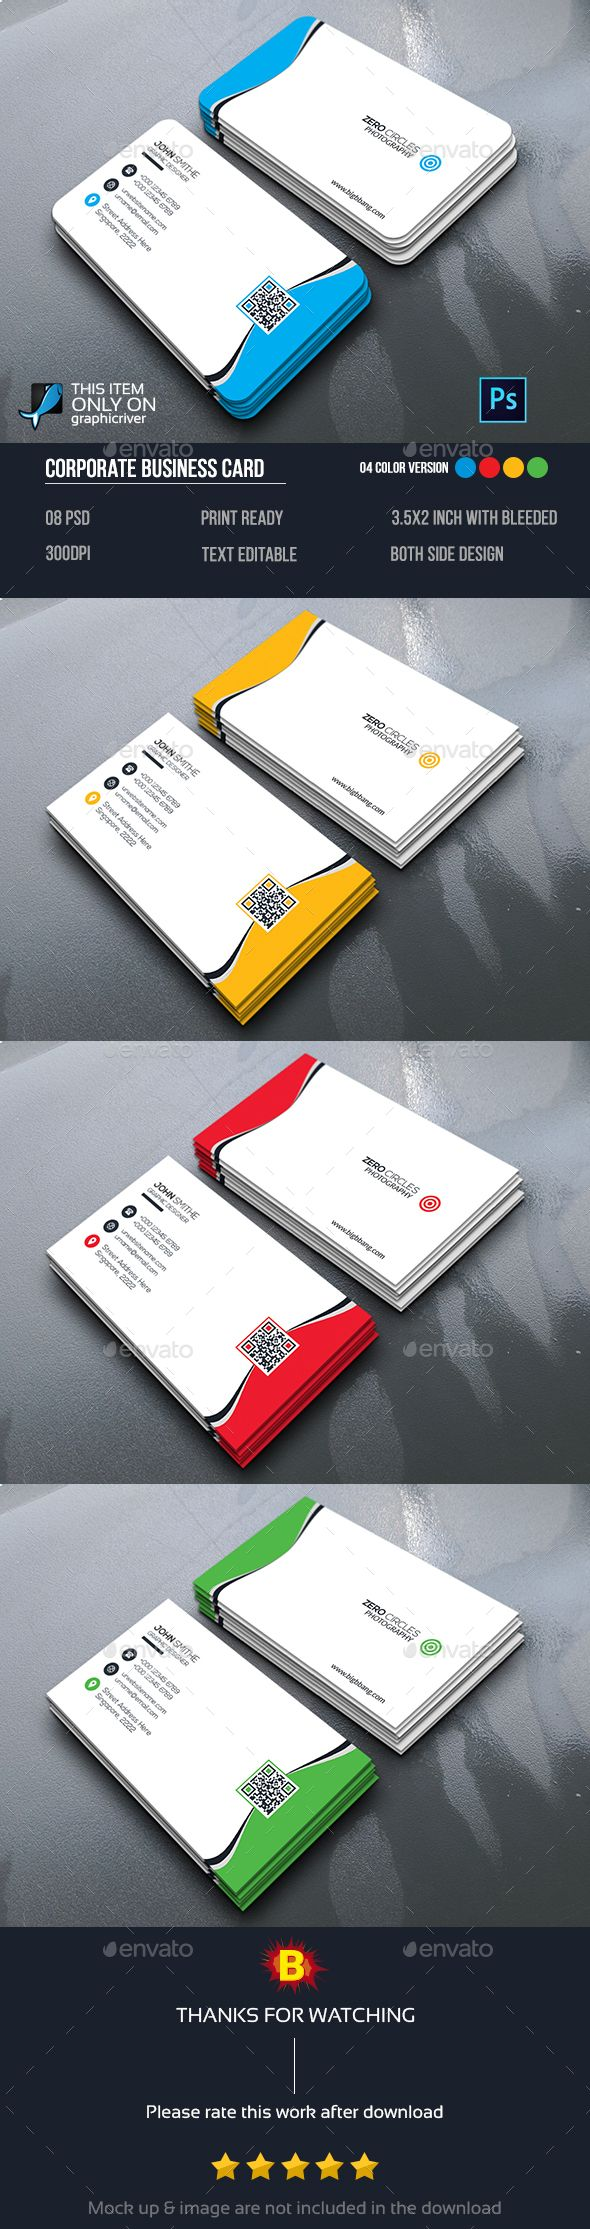 165 best photography business card images on pinterest photography photography business card by bigbbang reheart Image collections